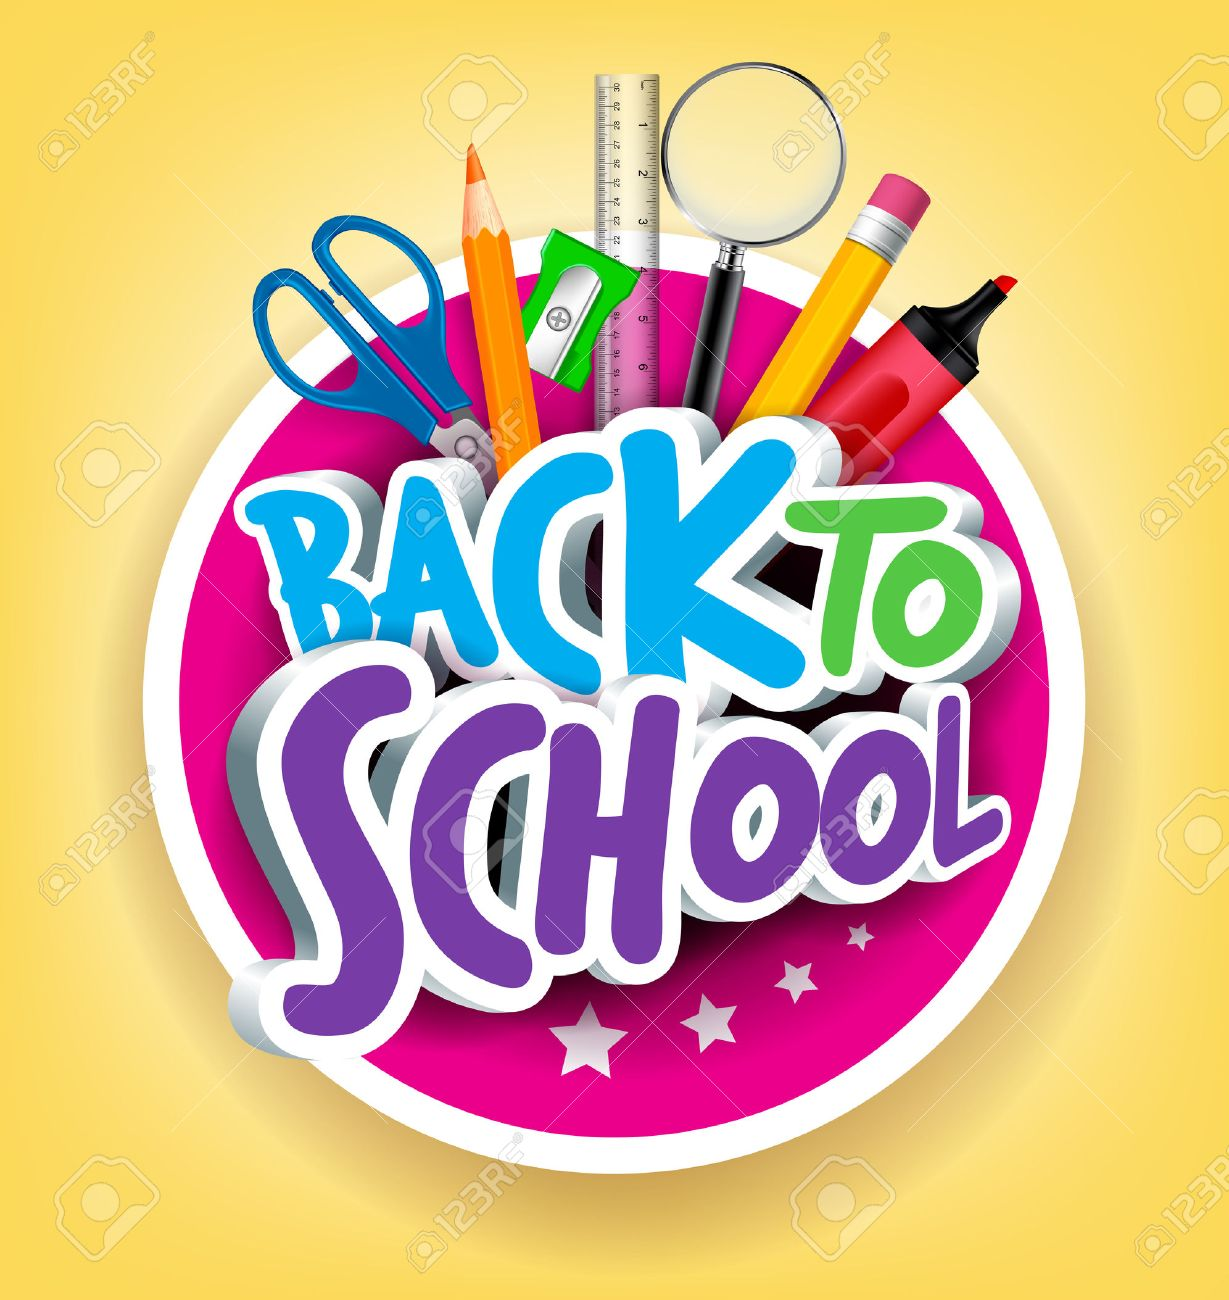 Poster design using 3d objects - Poster Design Using 3d Objects Student School Colorful Realistic 3d Back To School Title Texts Download